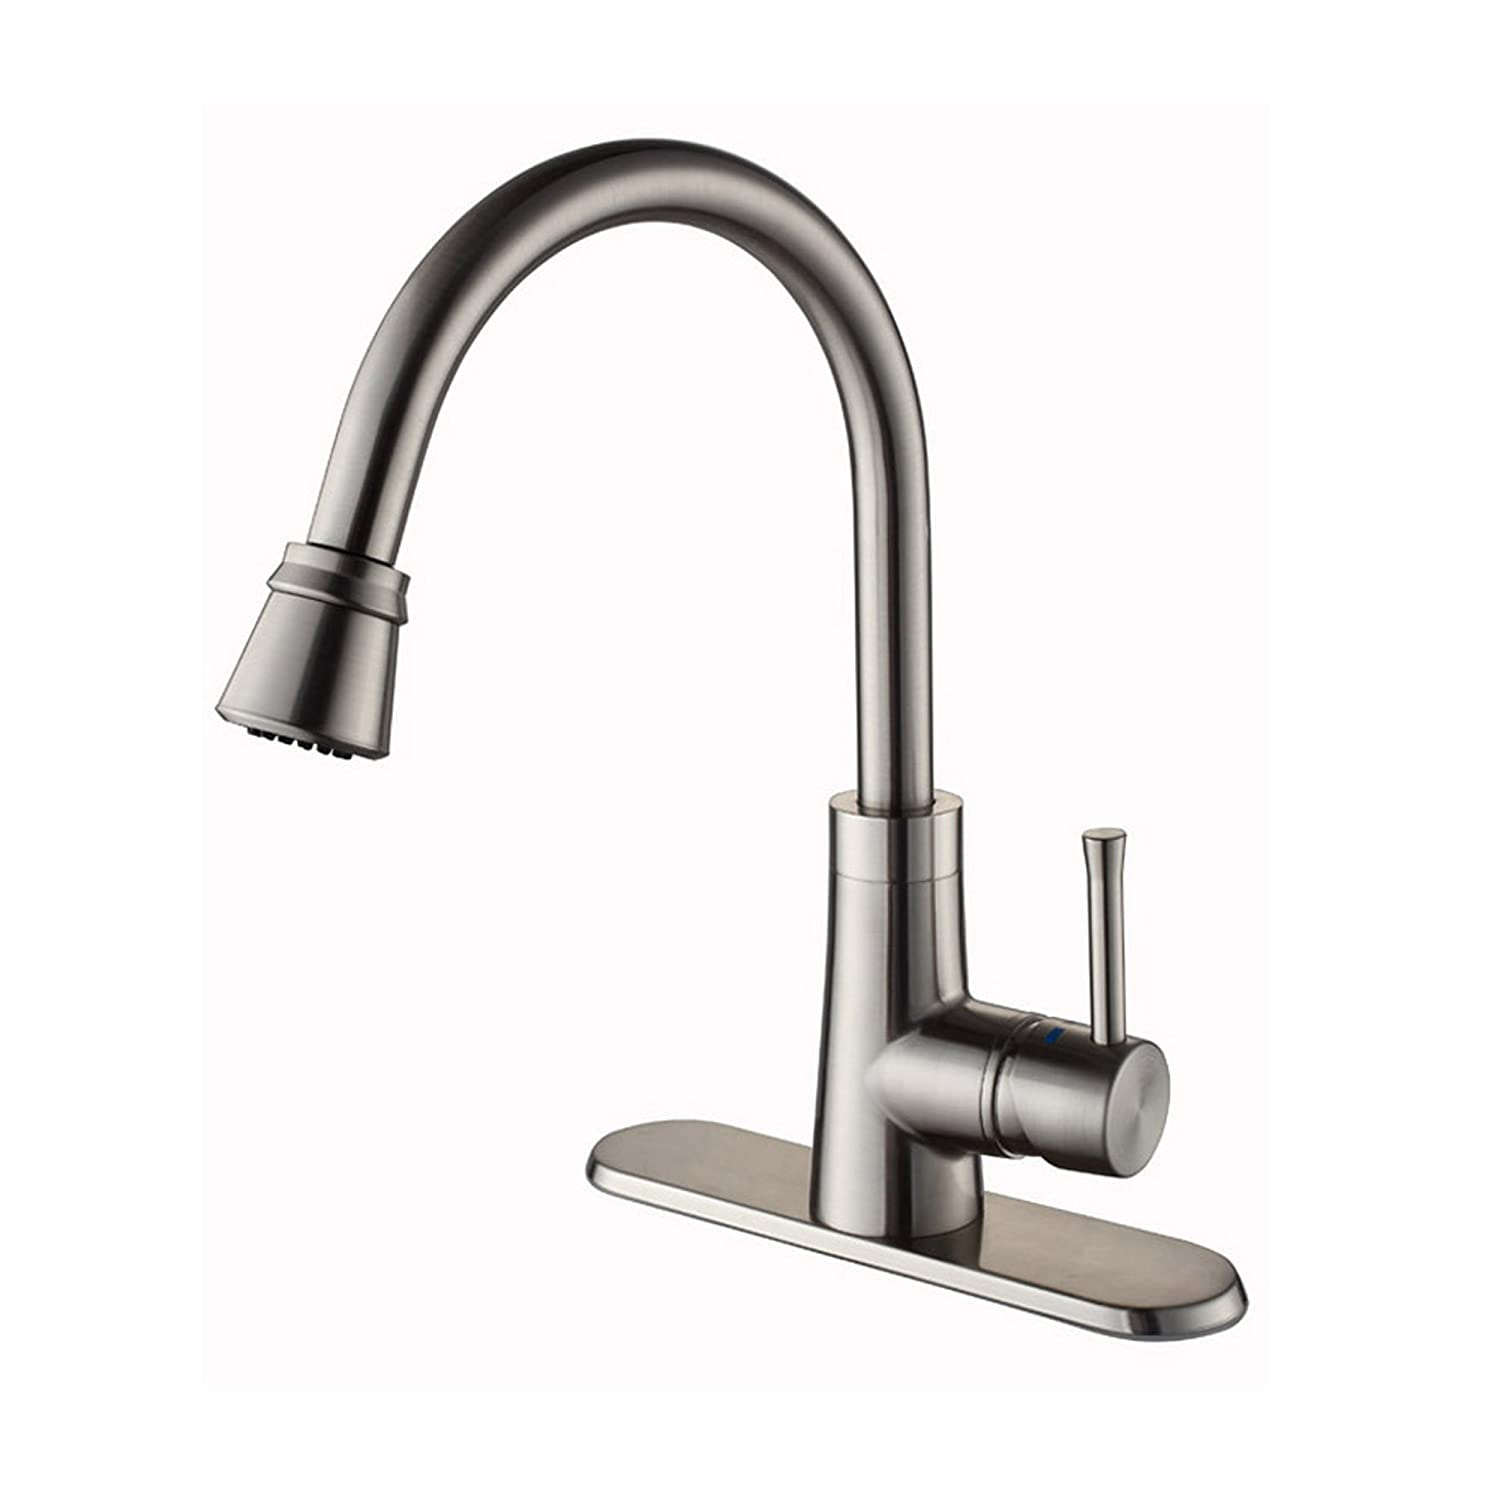 CLEANFLO 88808-90,Dancer Kitchen Faucet,1 or 3 Hole Installation, High 15.3 INCH-Arc Spout ,Flexible Spout 360 , Patented Design,Inlet Nylon Braided Hose, Non Corrosive, Lead-Free, Chrome Black